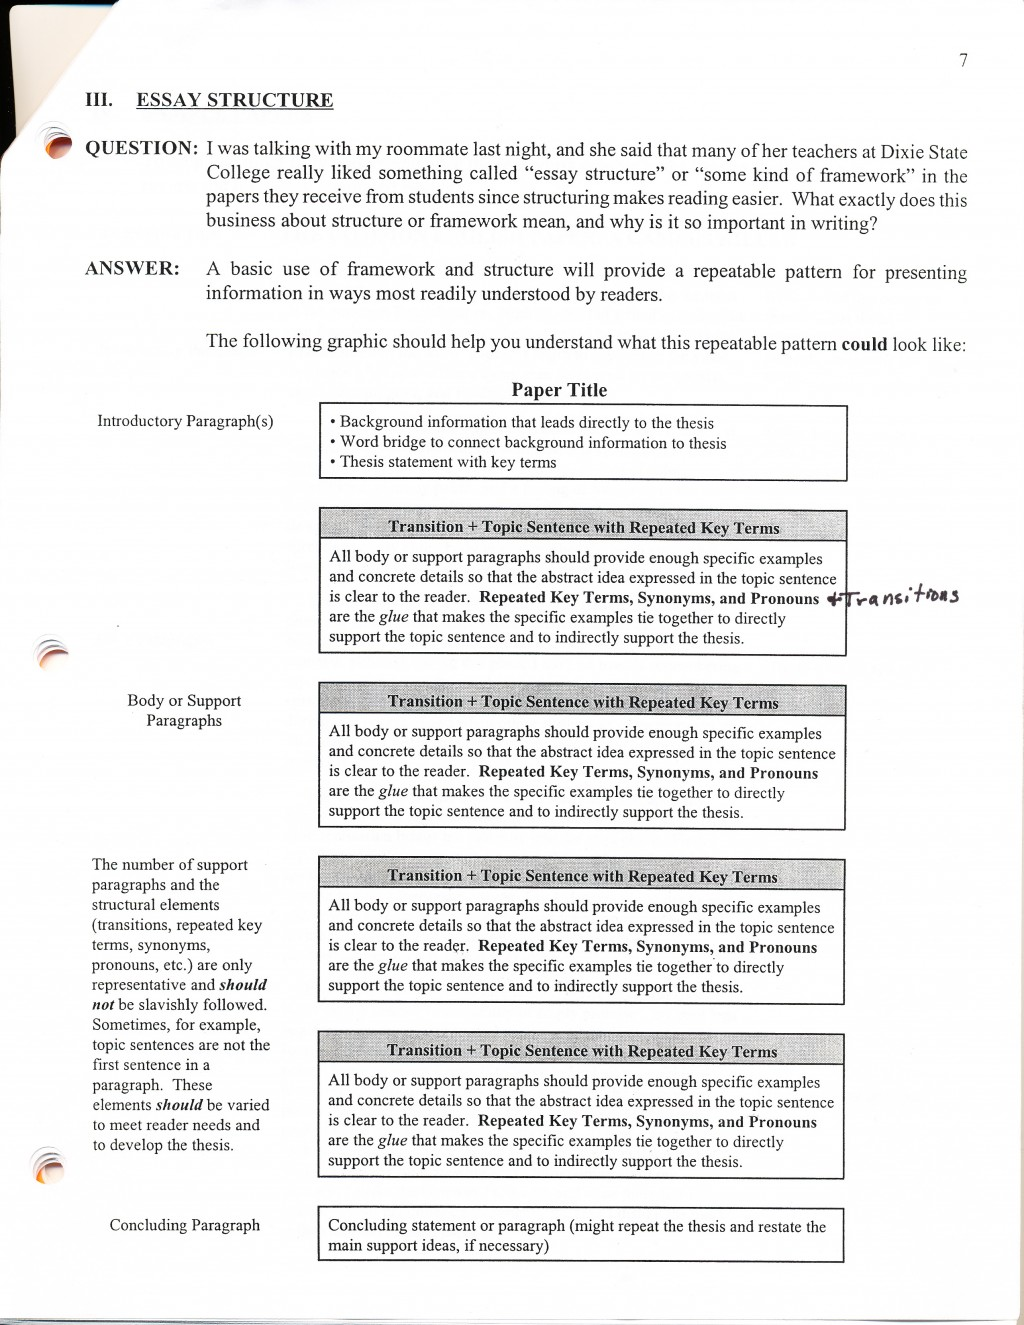 007 Essay Example Structure English Surprising Format Formal Letter Spm Article Pt3 Large